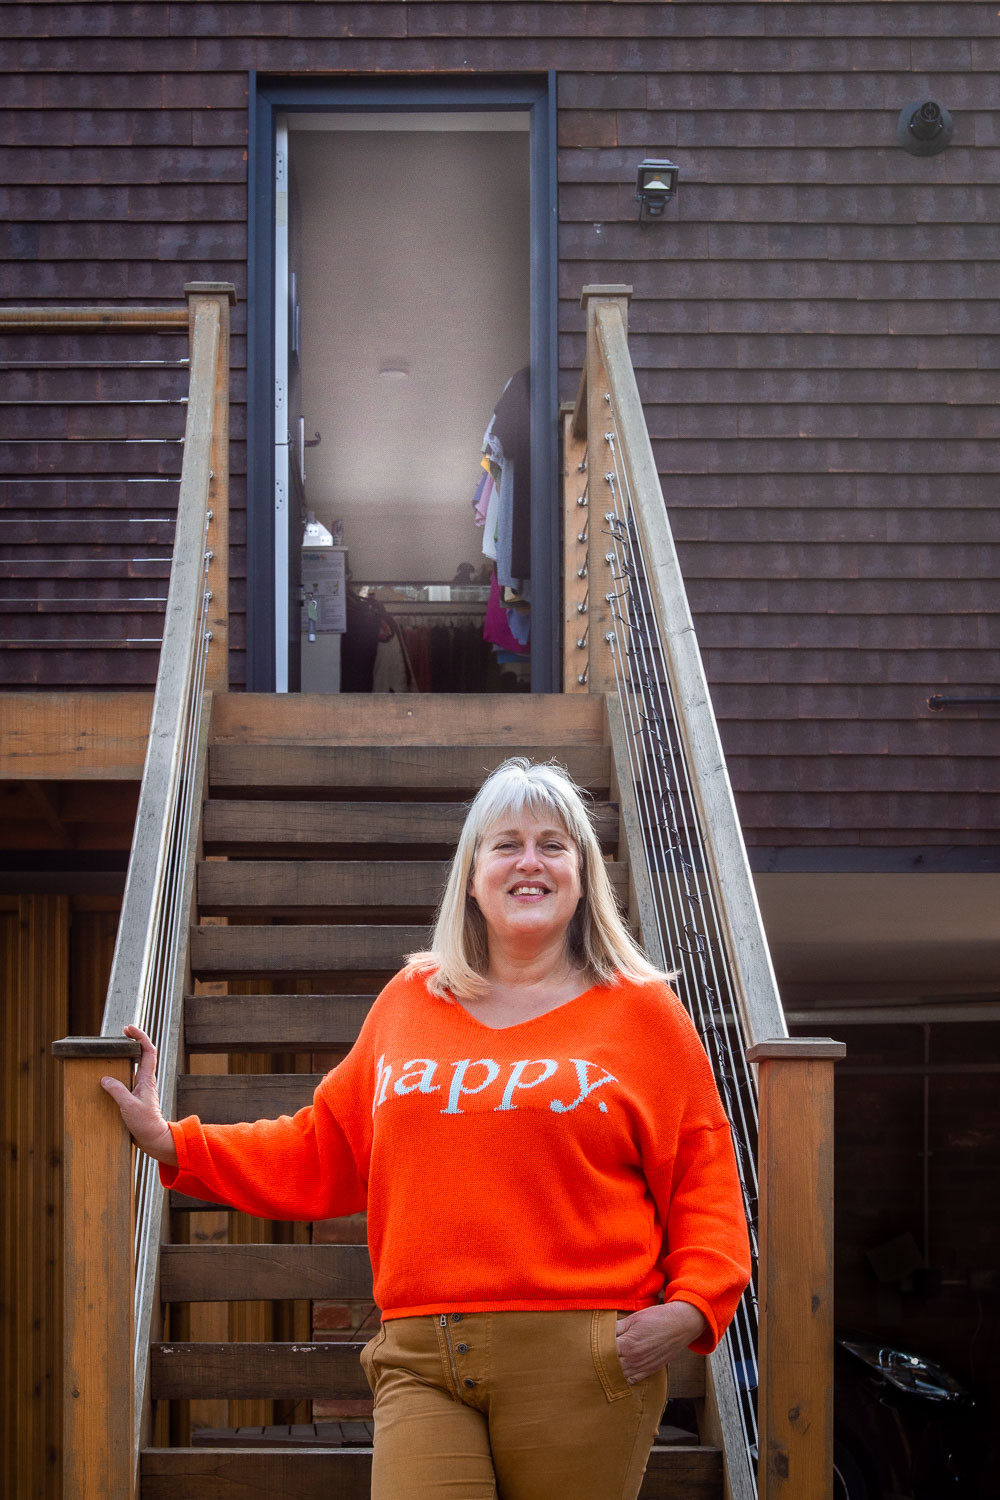 Maidenhead Business Branding Photography | Photo of independent shop owner on stairs in front of open shop door